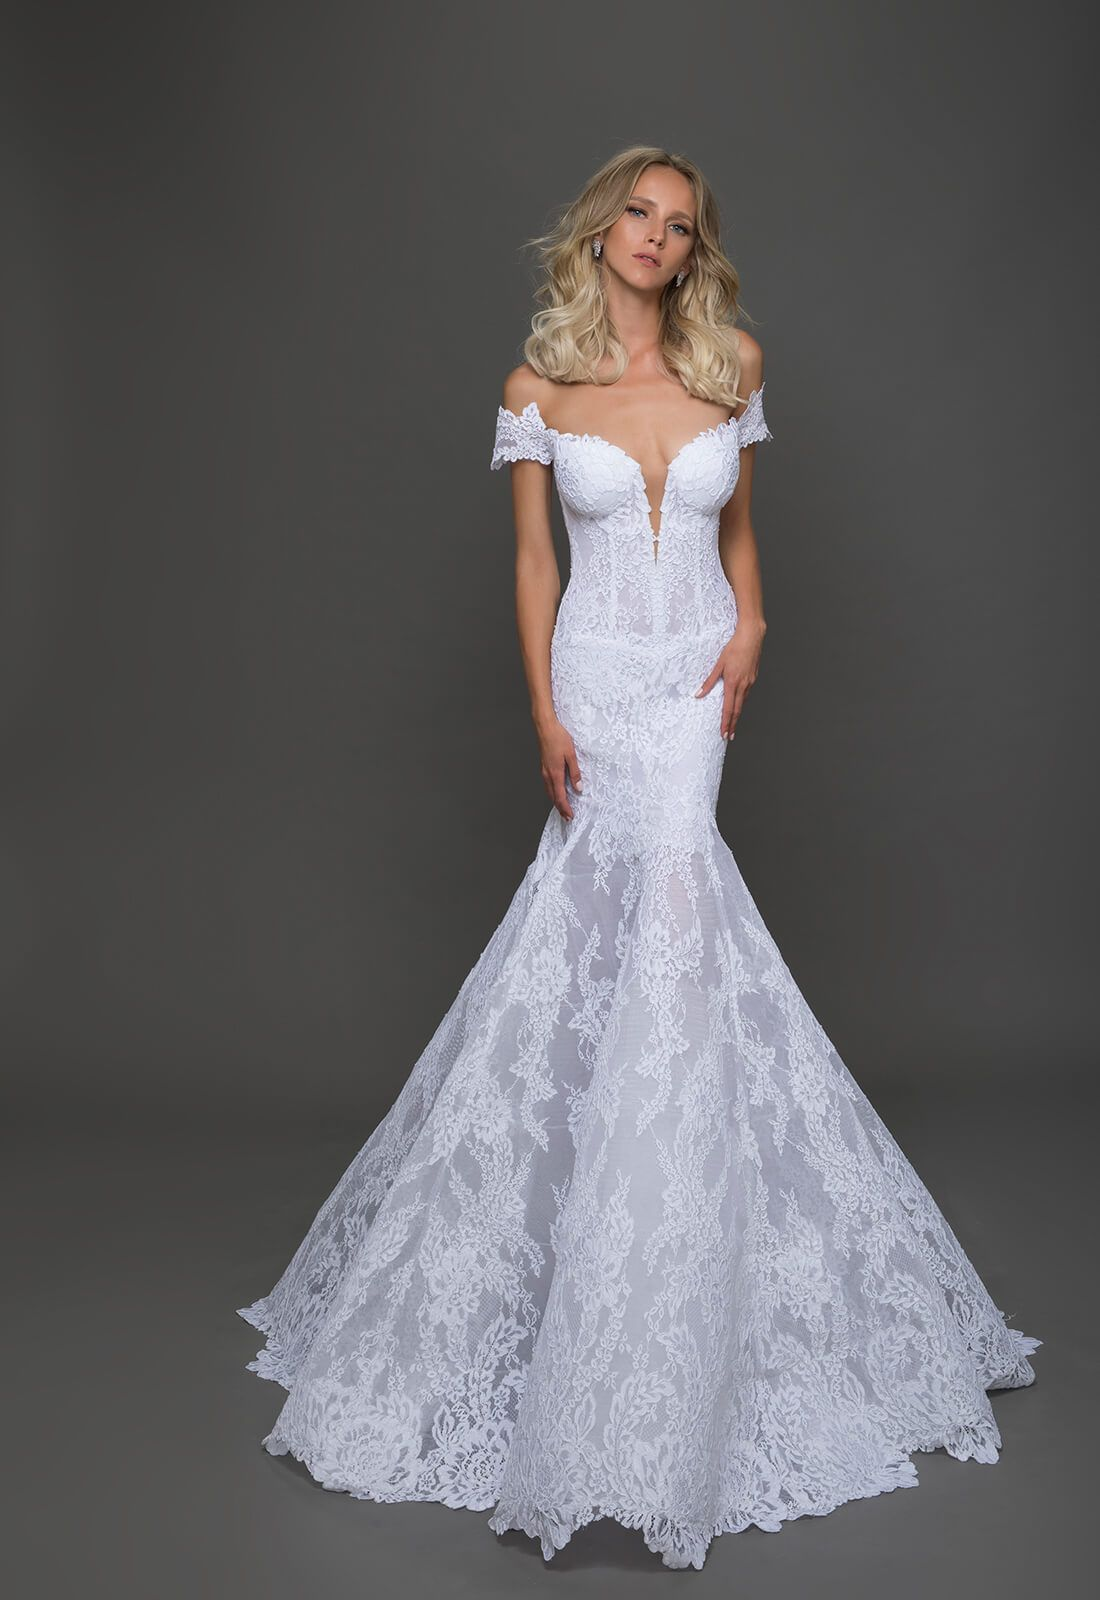 Lace fit and flare gown with sheer corset bodice, off the shoulder ...